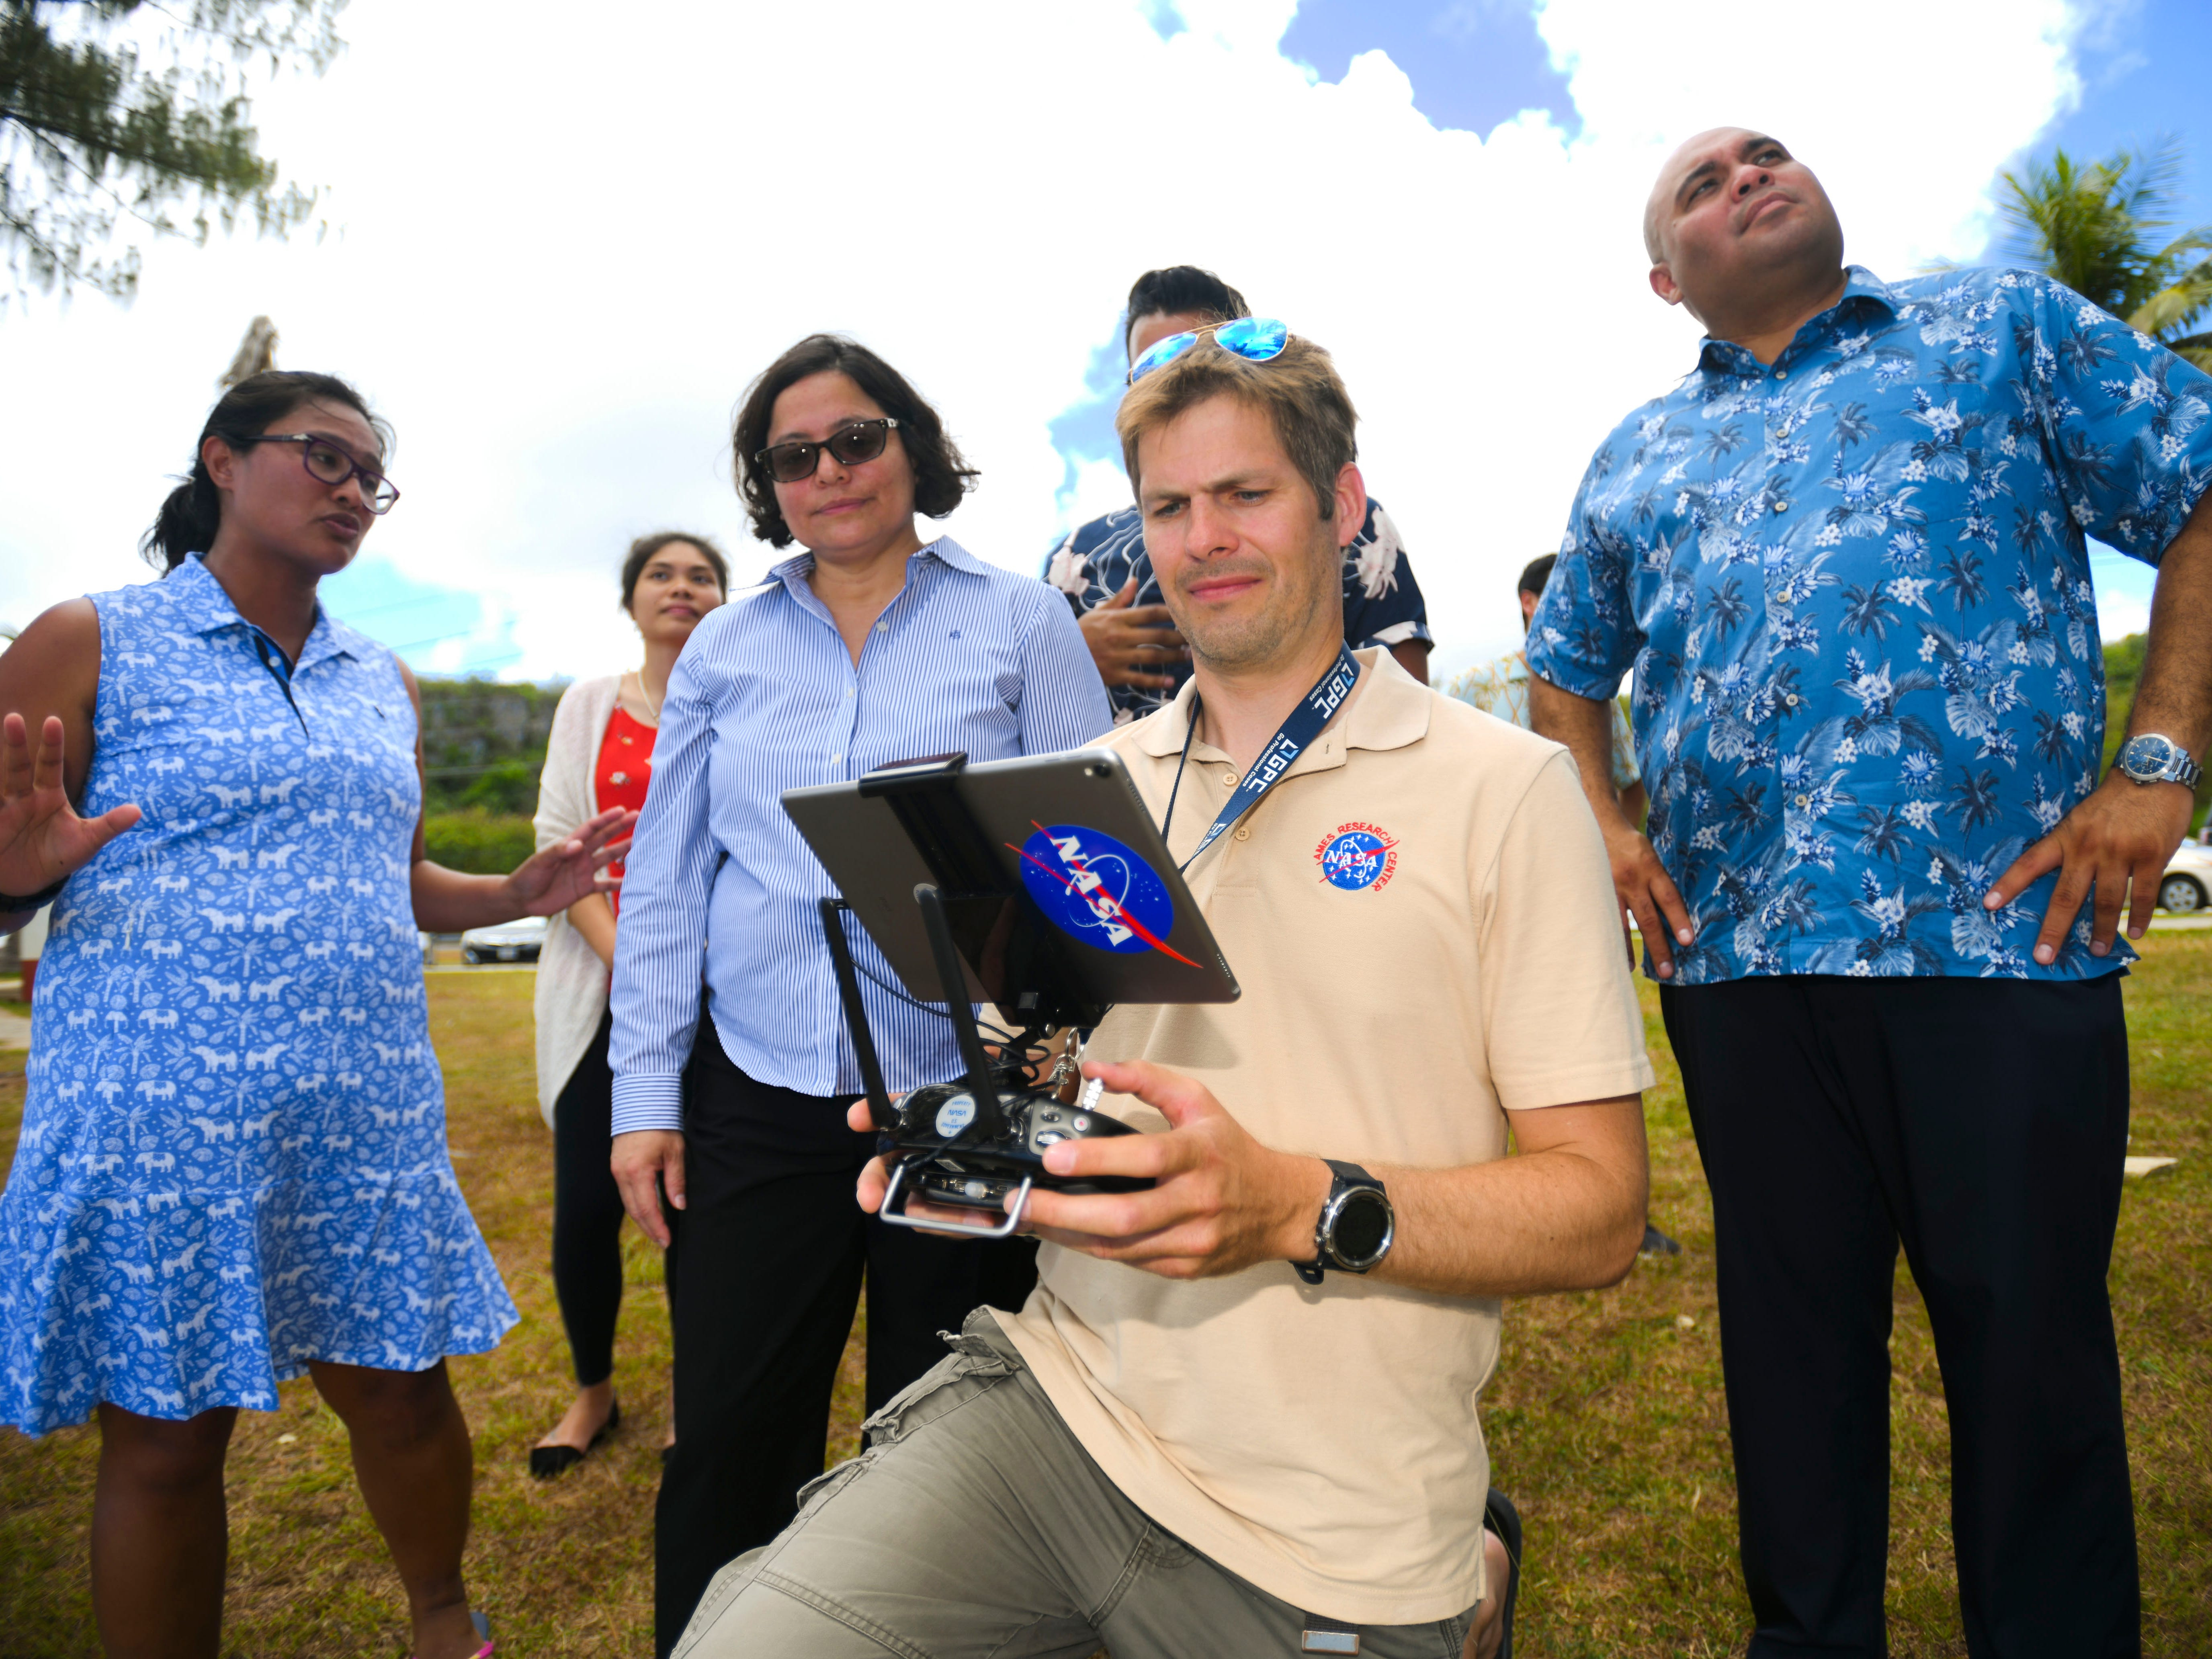 NASA research engineer Jonas Jonsson, front, controls an unmanned aerial vehicle in the sky above Tepungan Beach Park, near Fisheye Marine Park in Piti, on Wednesday, May 15, 2019. The drone, using Fluid Lensing technology, has been used to map the underwater coral reefs of Piti and Tumon, from the air.